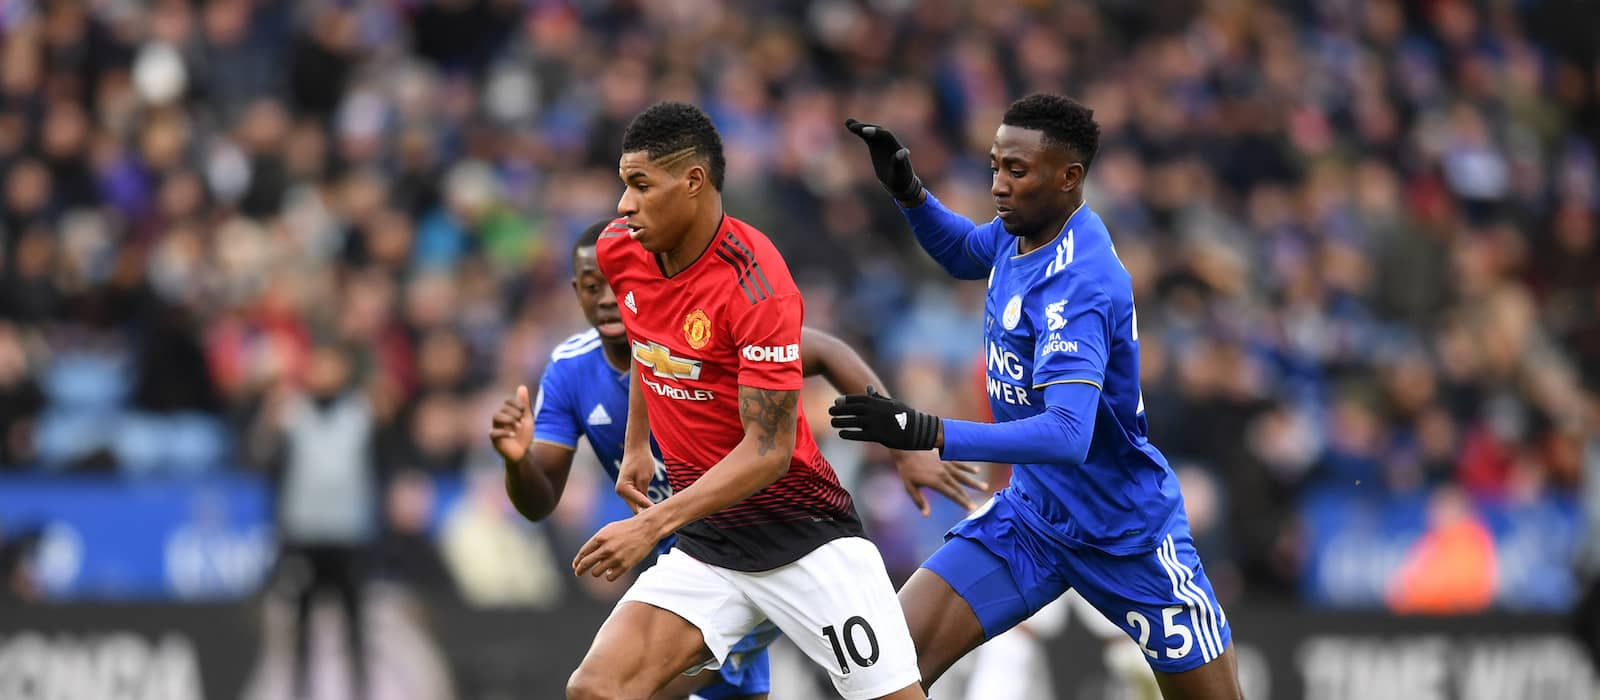 Player ratings: Leicester City 0-1 Manchester United